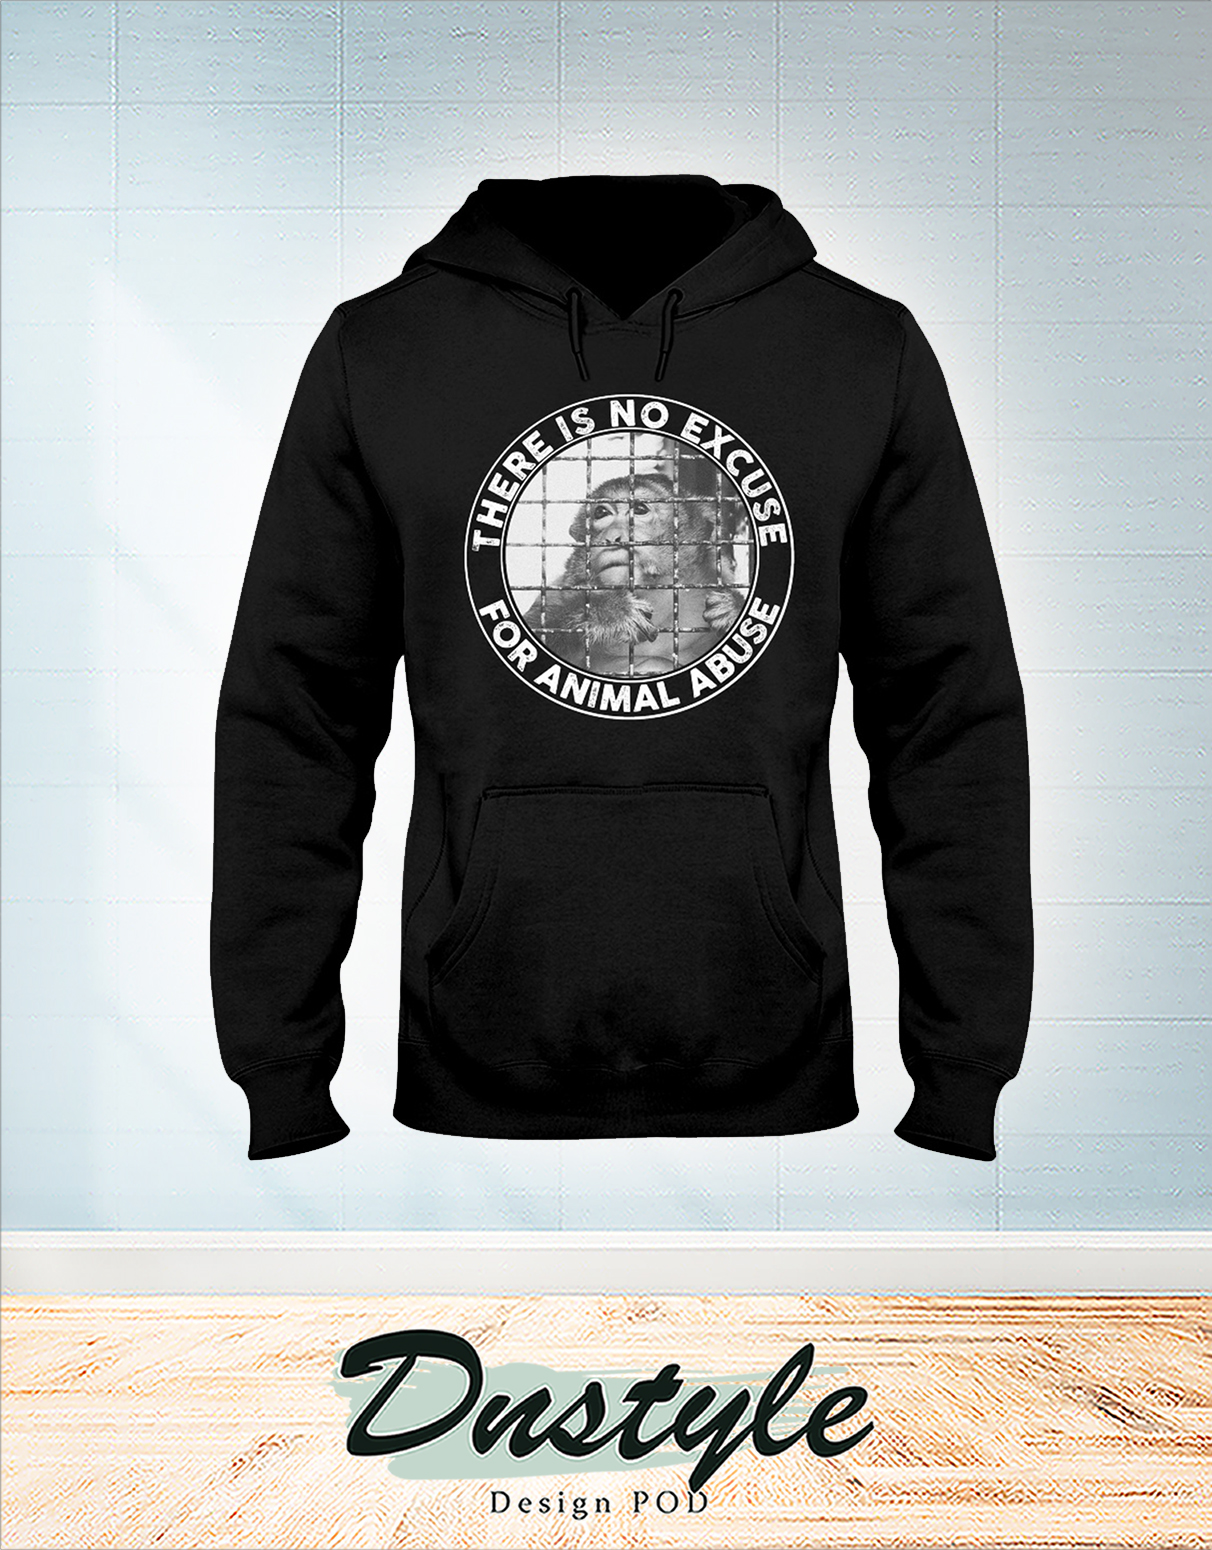 Vegan there is no excuse for animal abuse hoodie